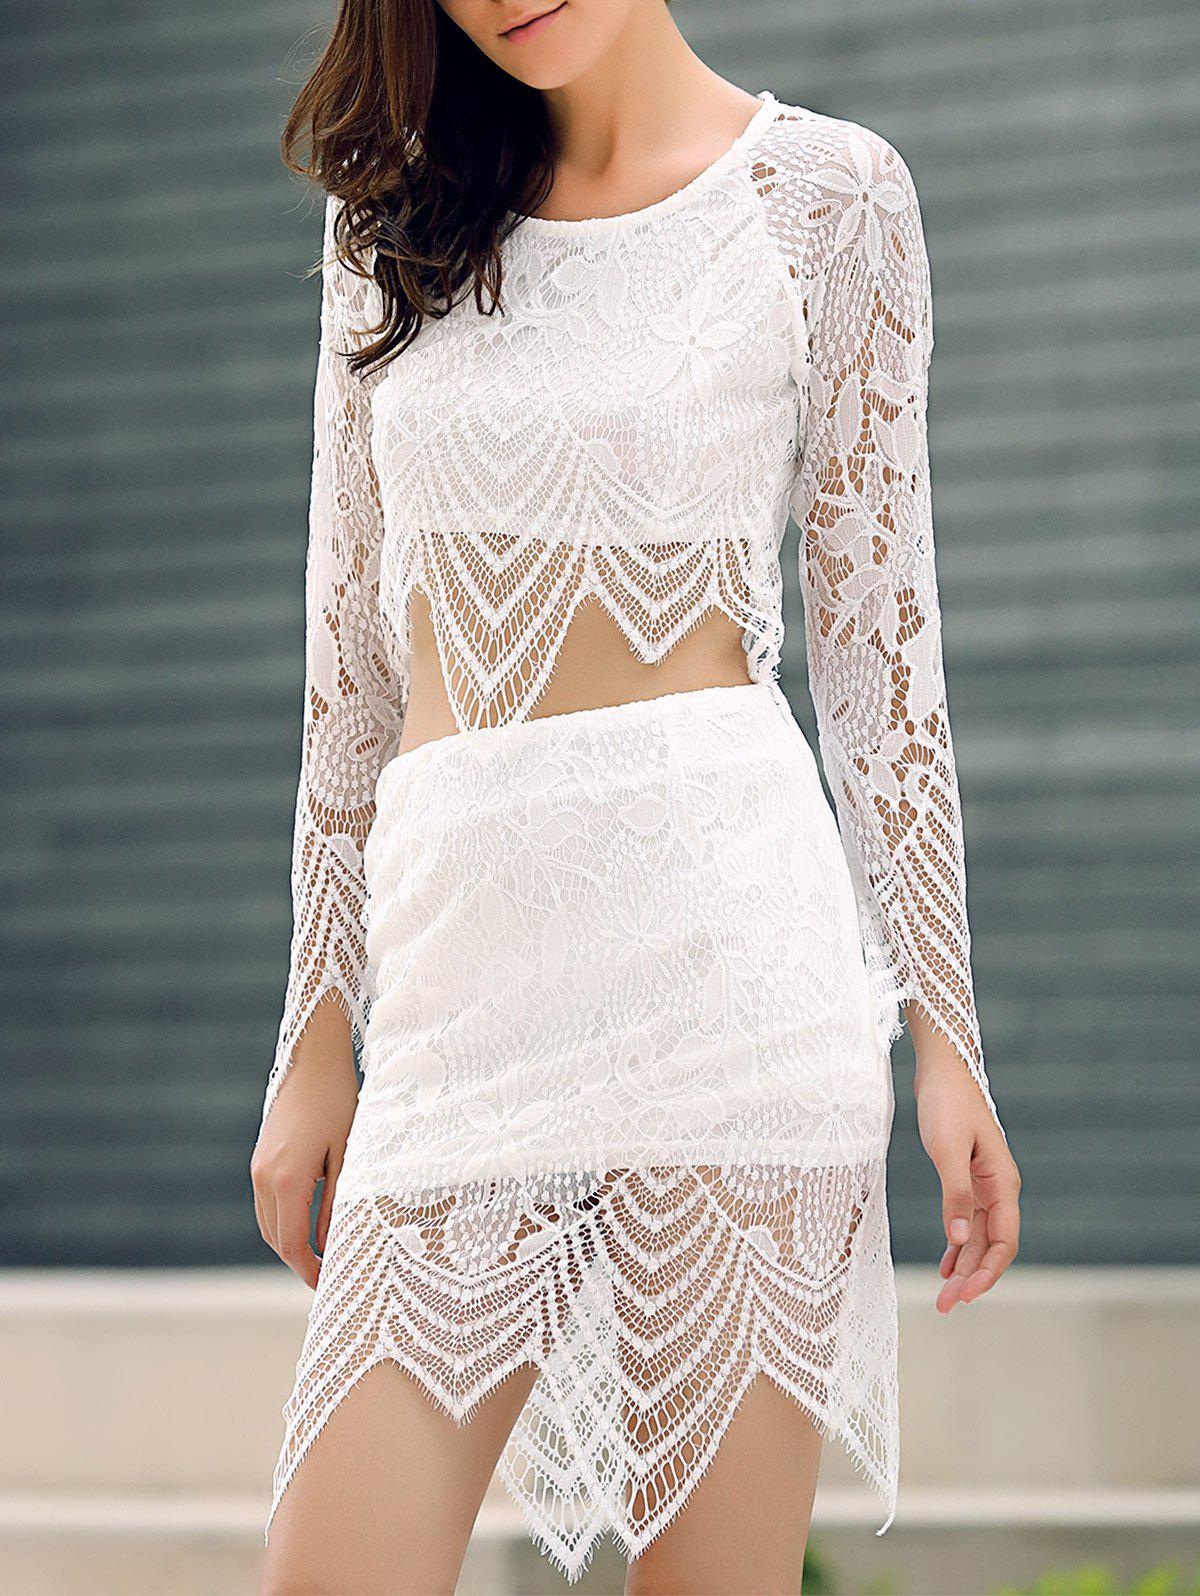 Lace Insert Crop Top and Lace Insert Skirt Twinset - WHITE S